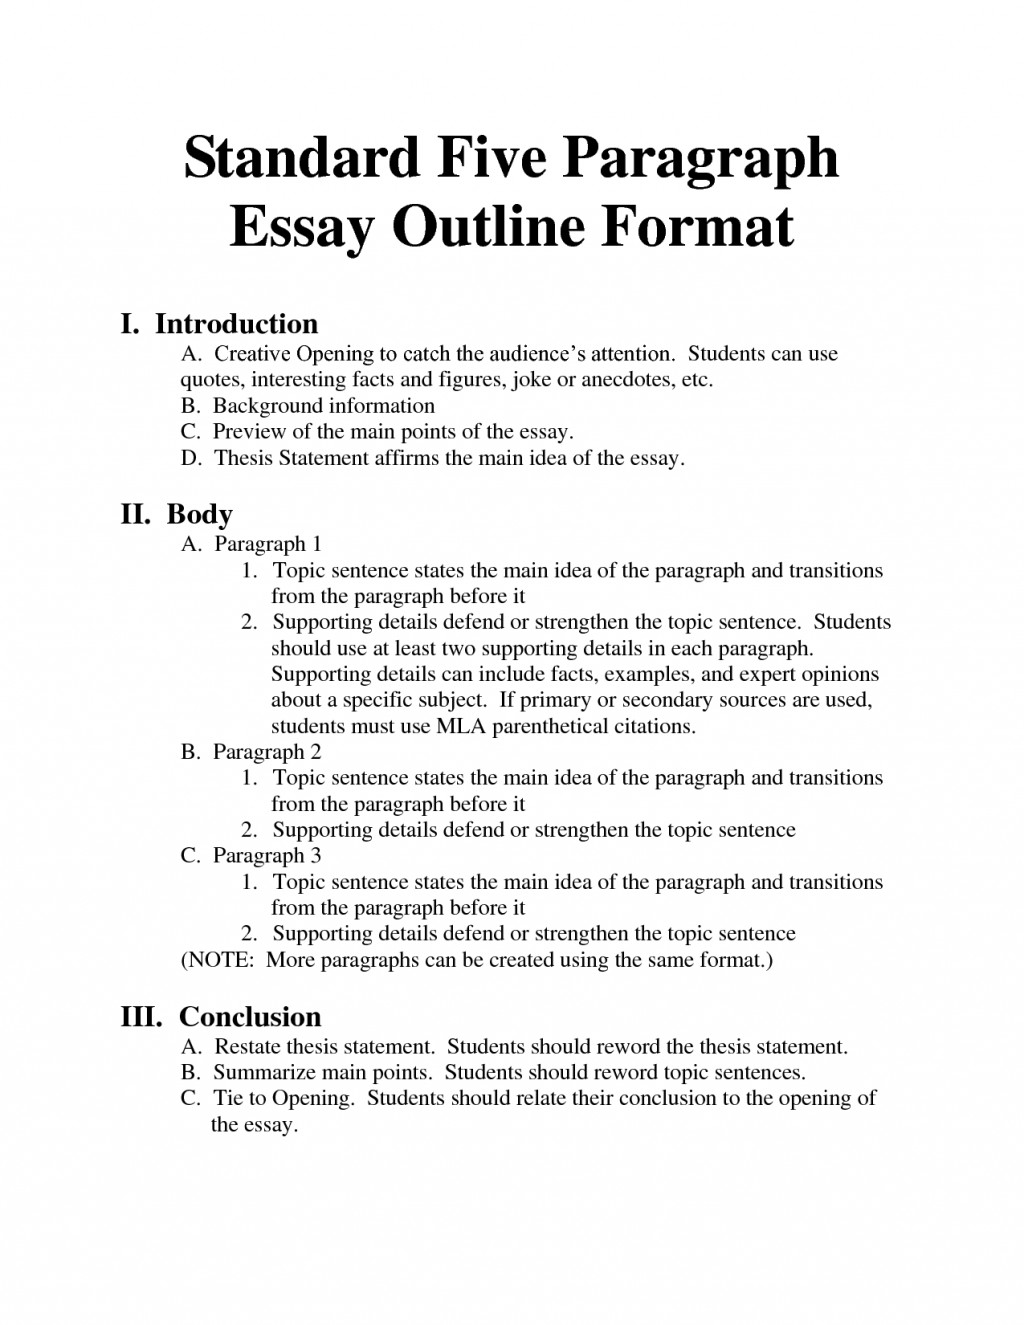 008 American History Research Paper Topics Surprising Ideas Large